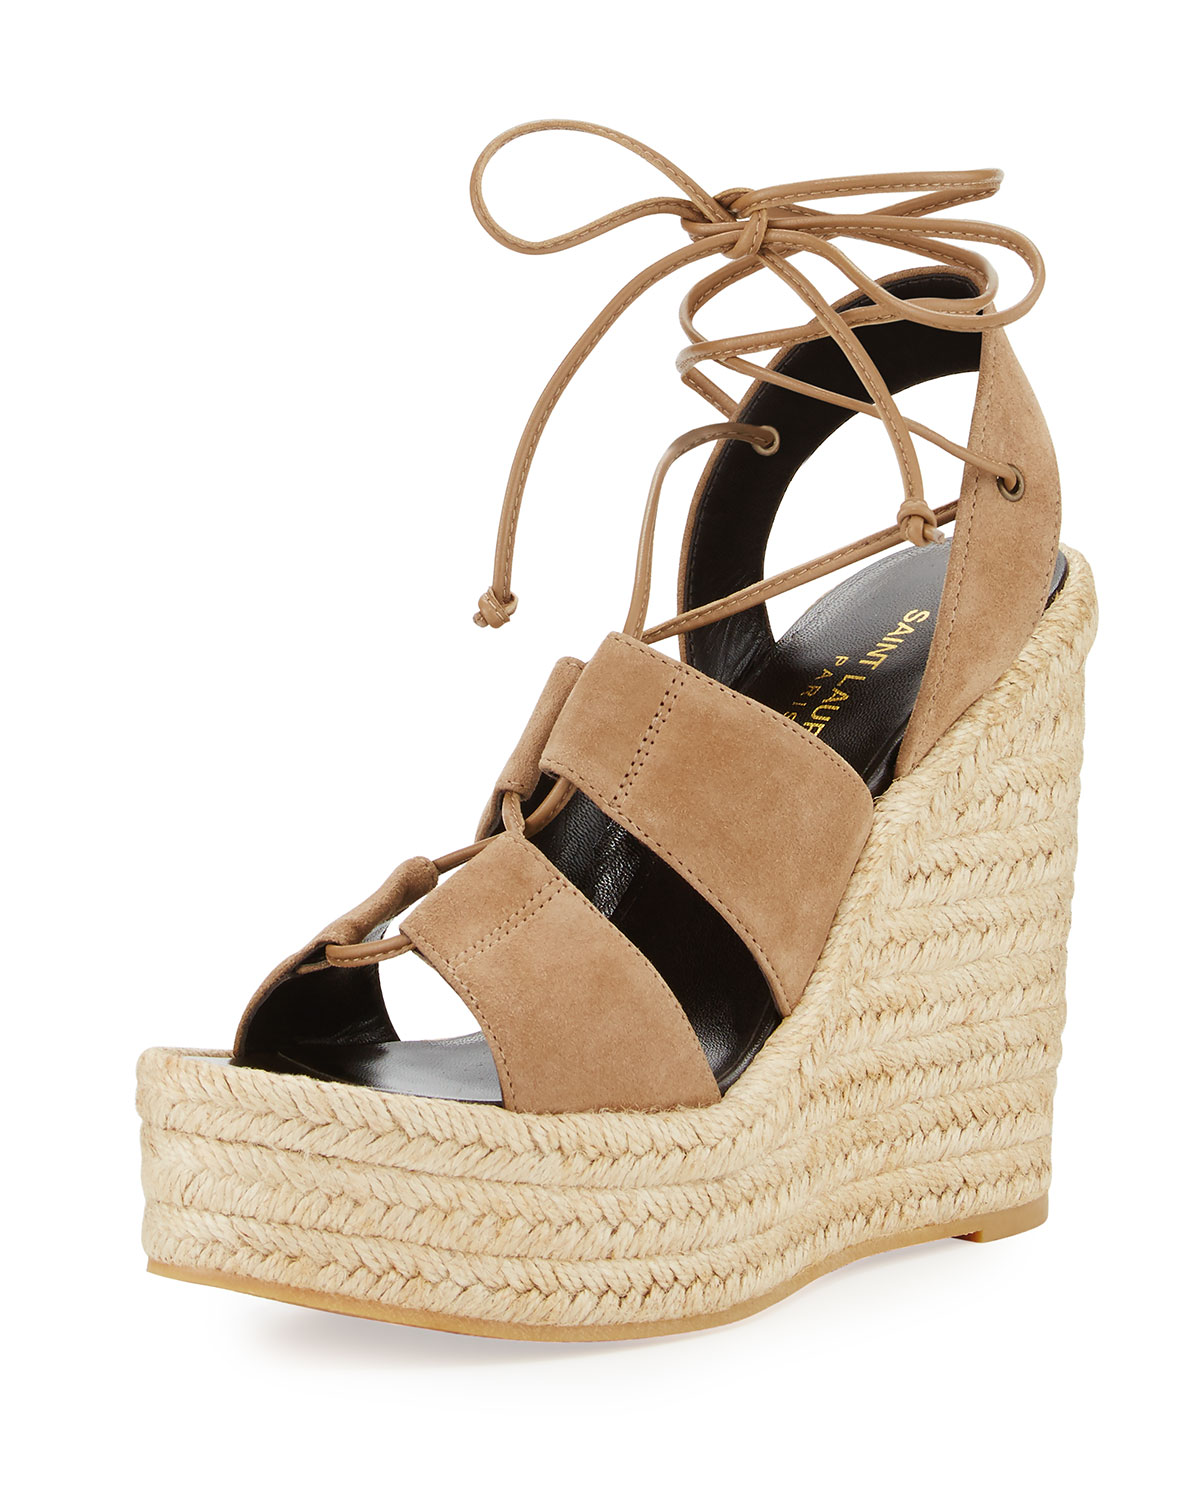 172a1f1d2161 Saint Laurent Suede 95mm Espadrille Wedge Sandal